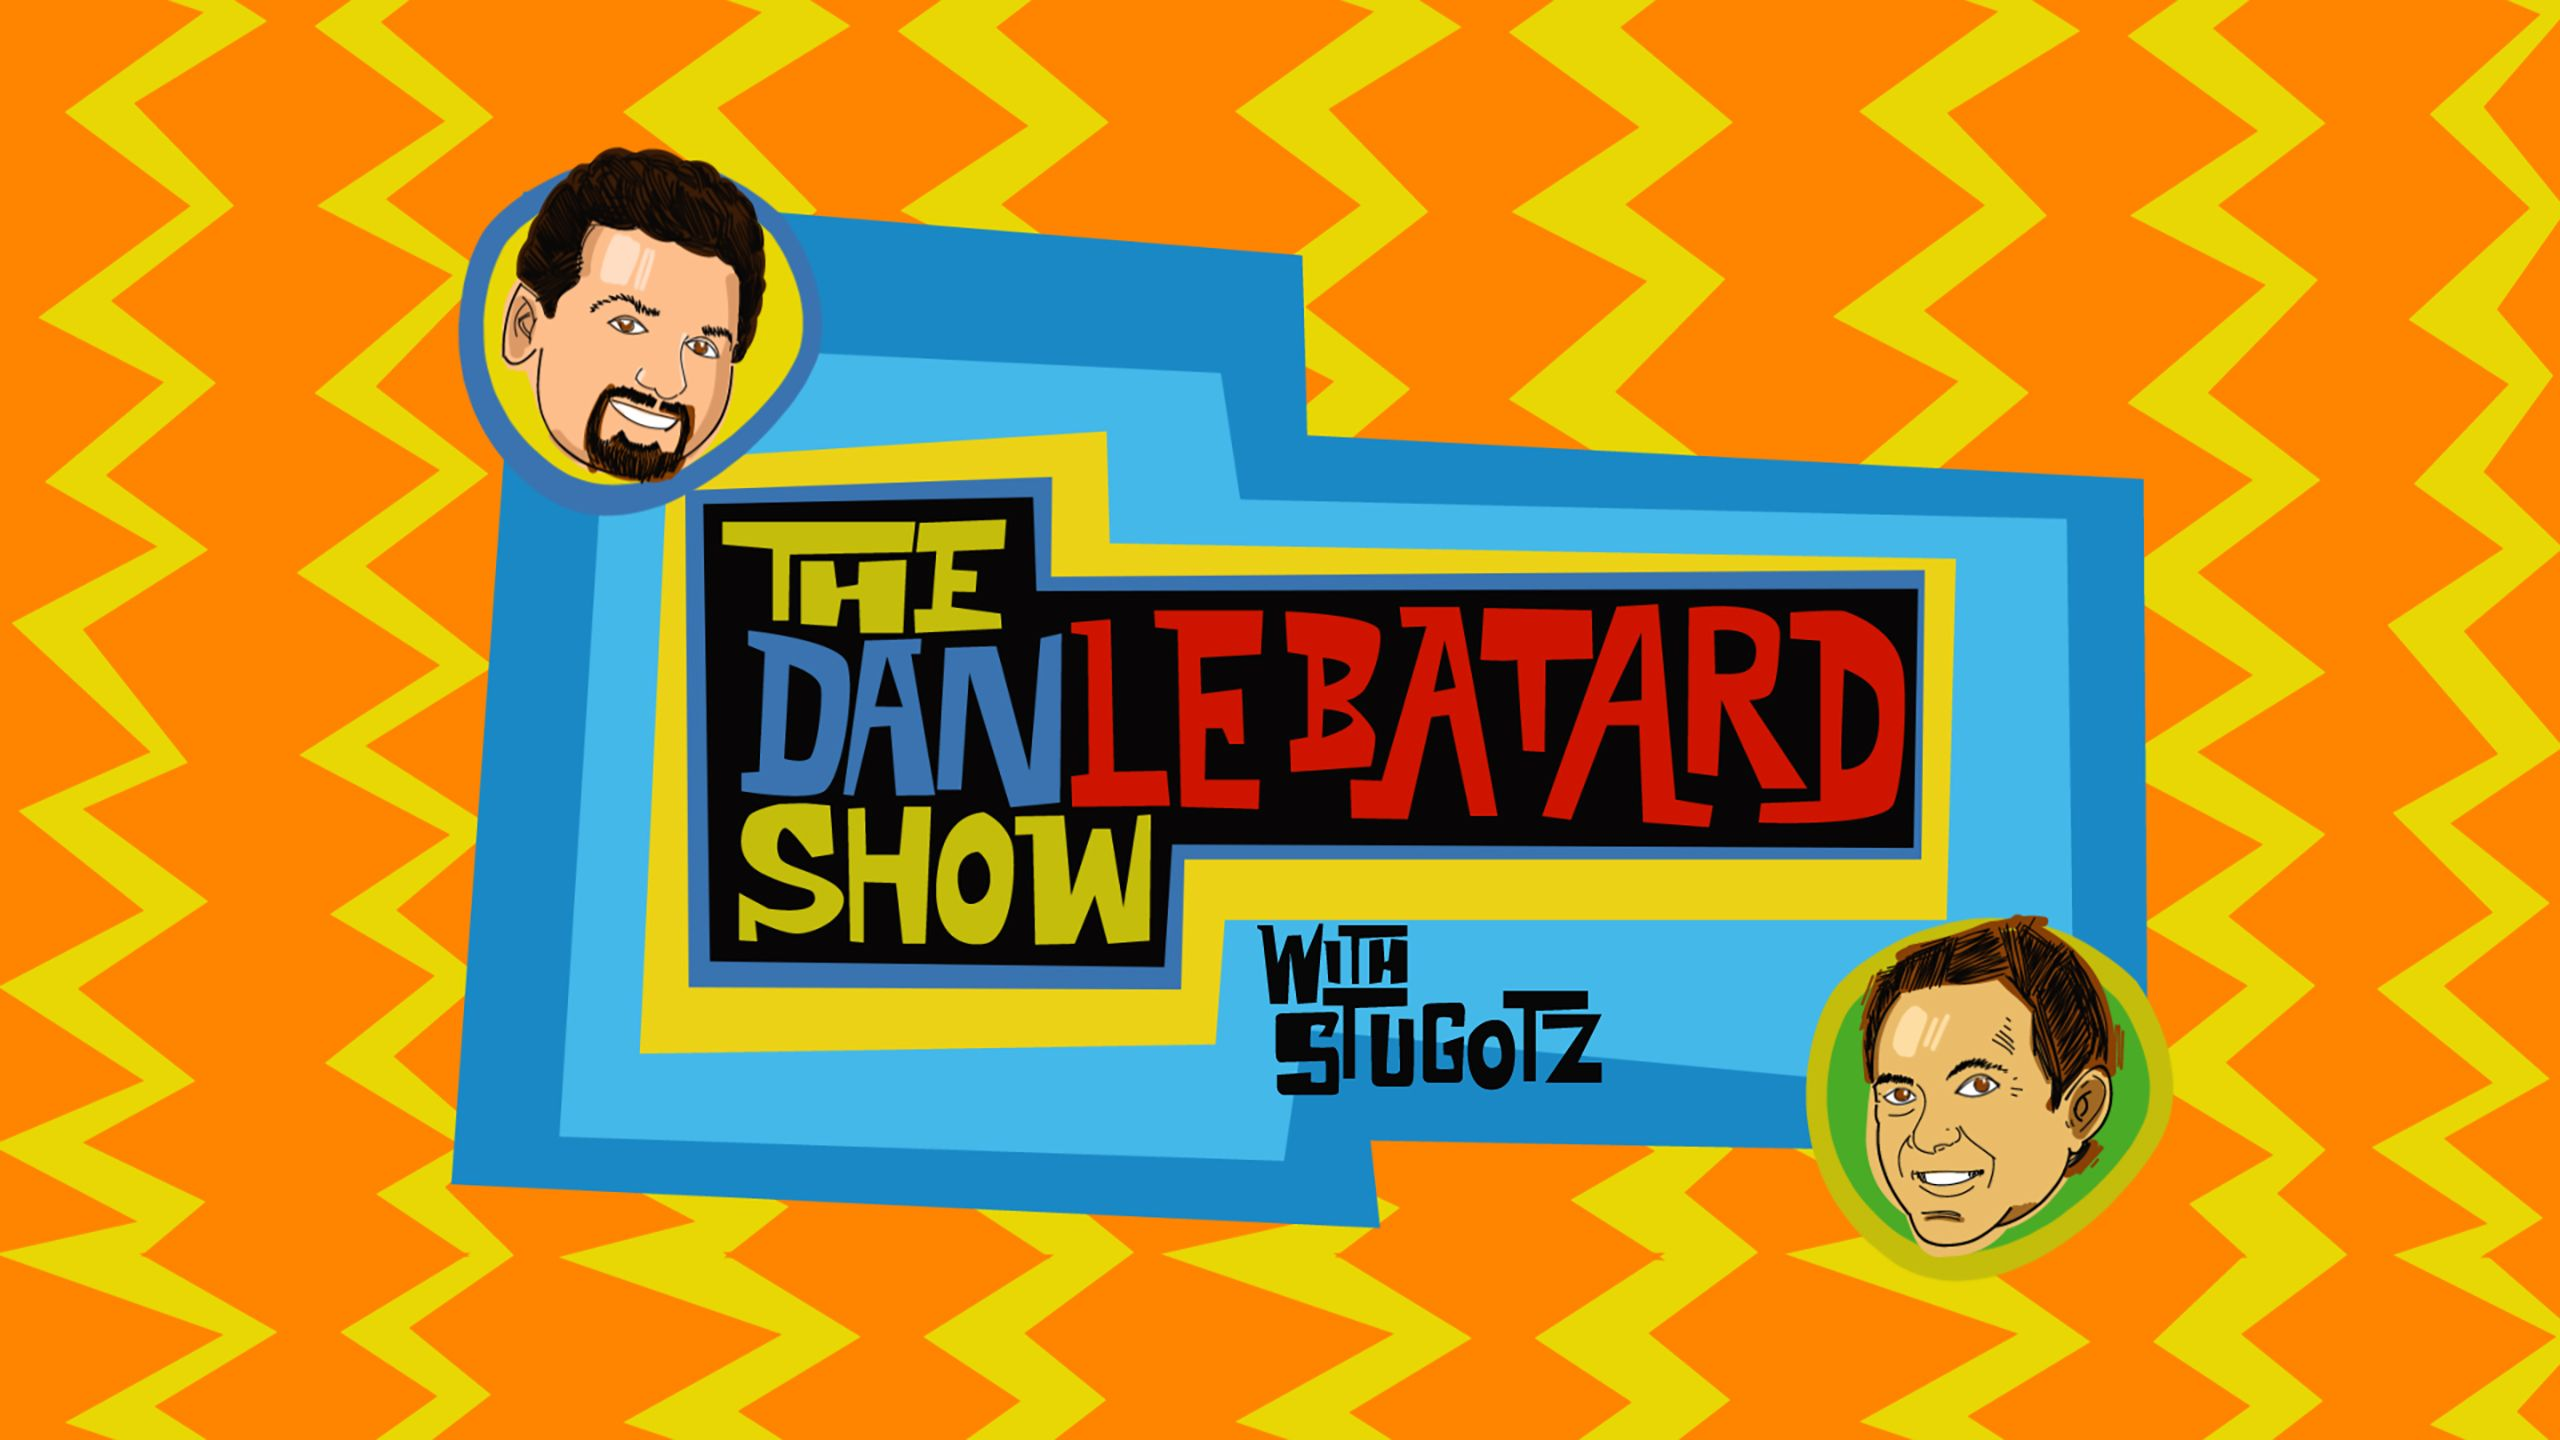 Mon, 1/22 - The Dan Le Batard Show with Stugotz Presented by Progressive